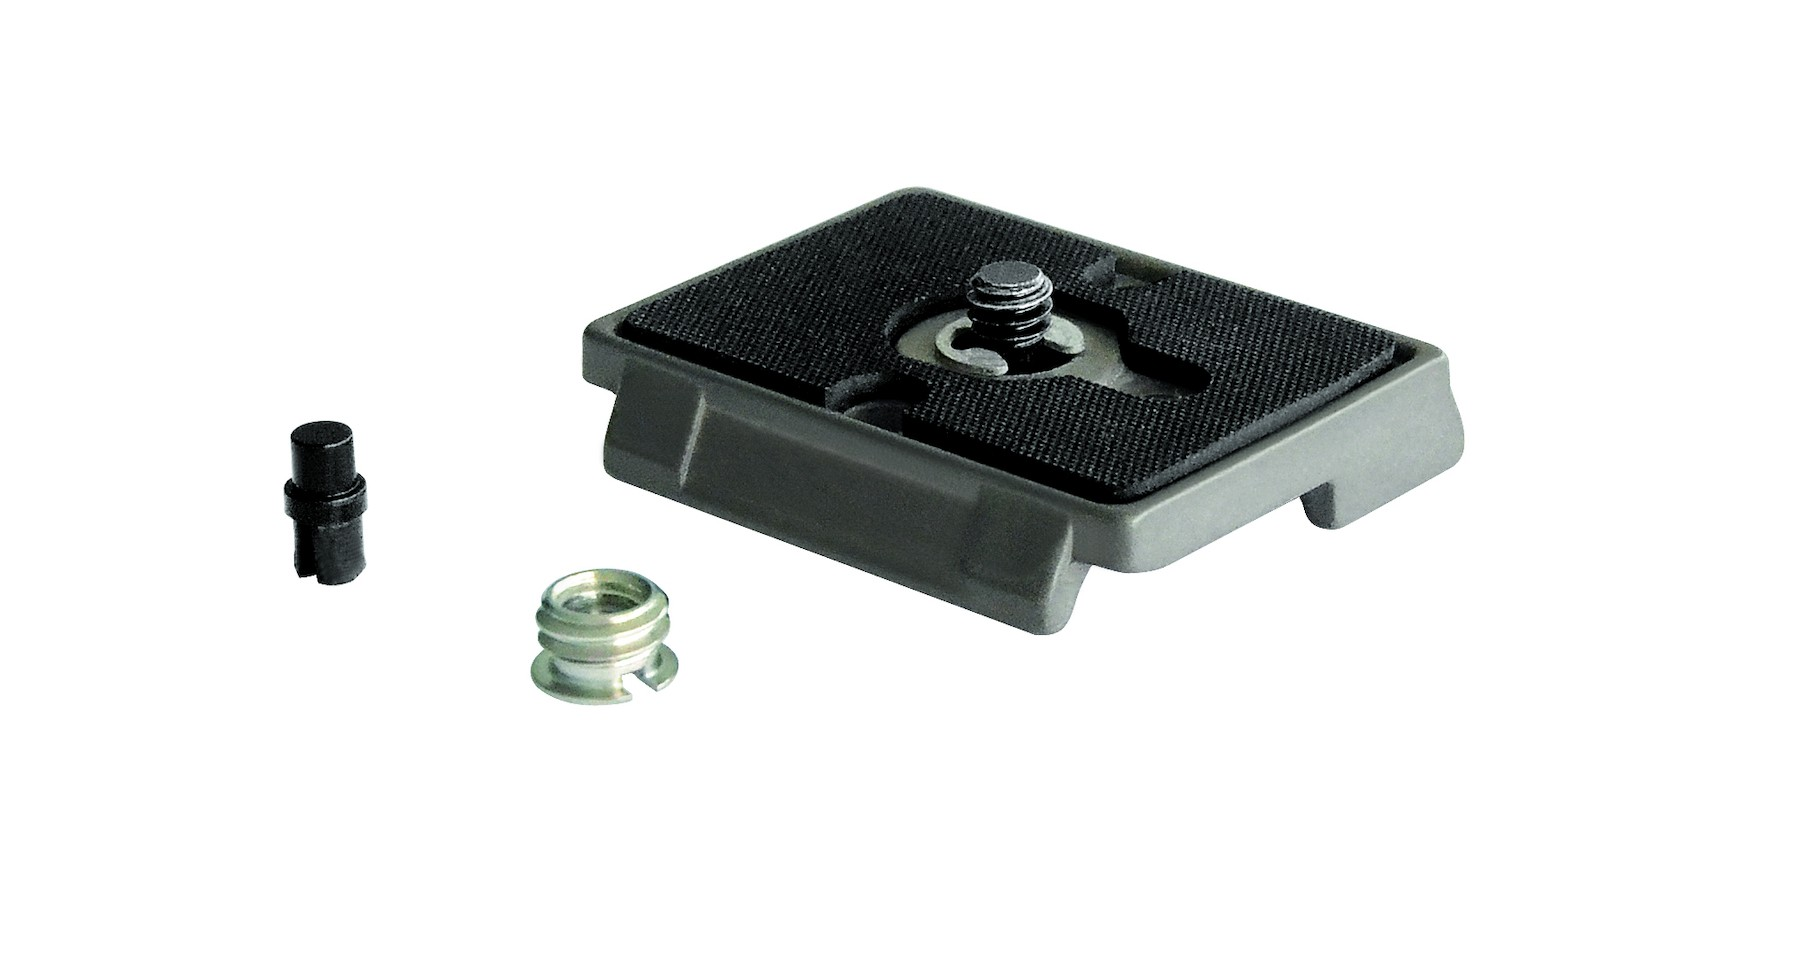 ACESSORY QUICK RELEASE PLATE 200 PL